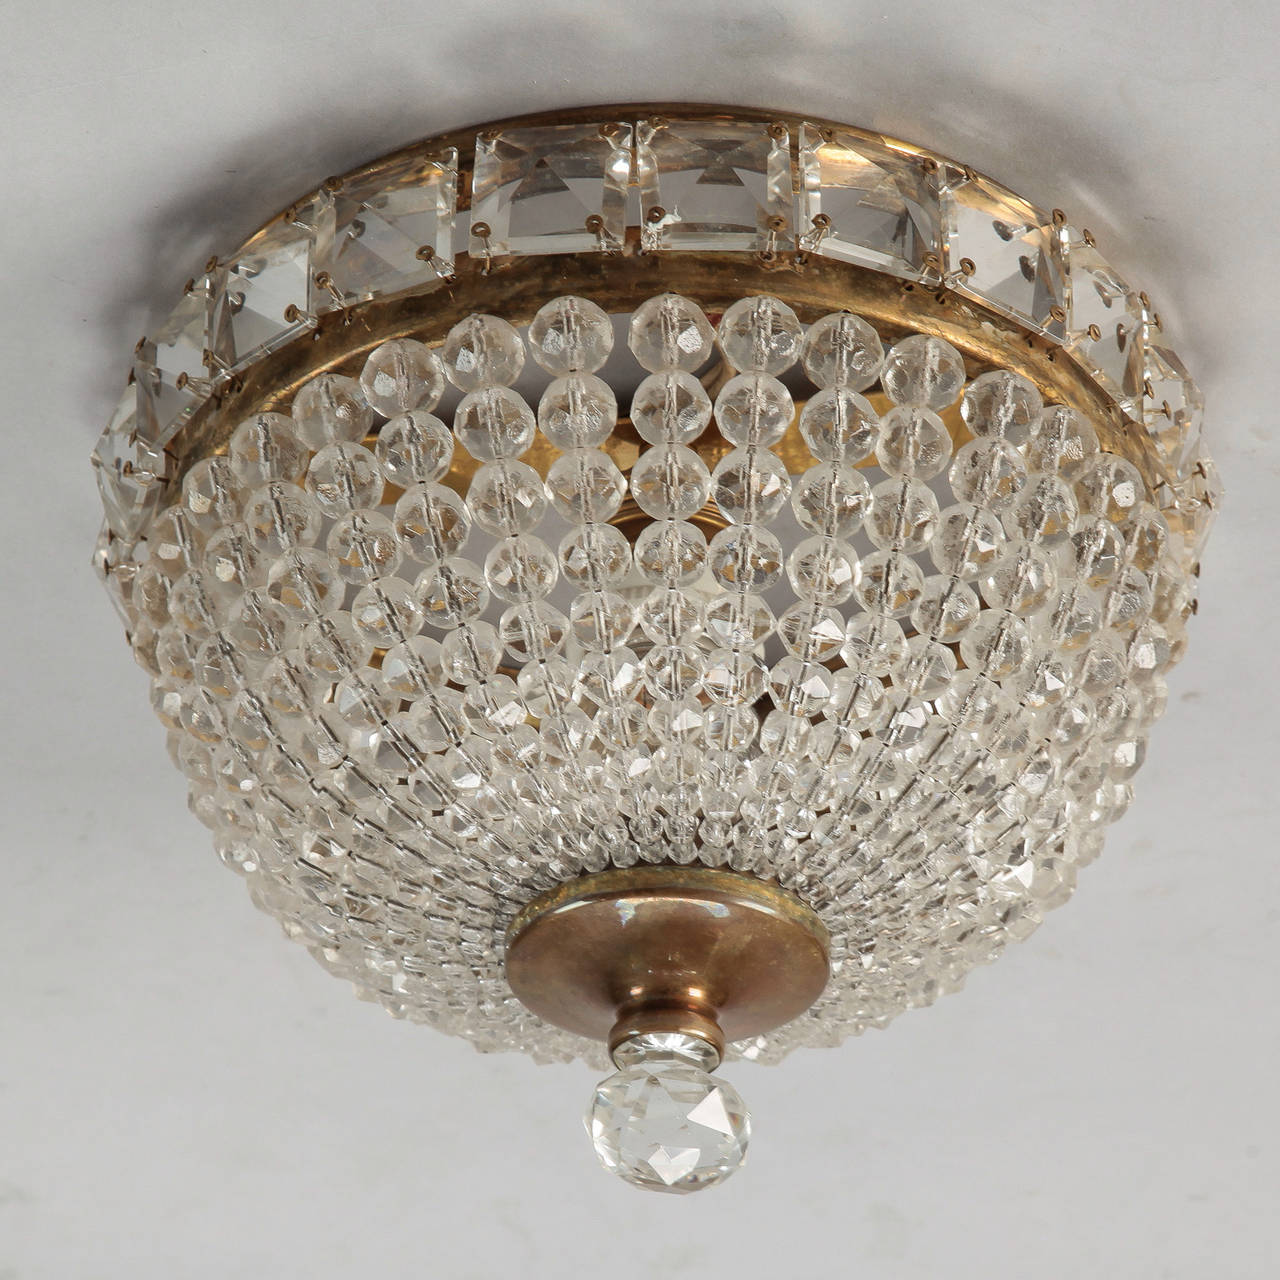 Beaded Crystal Flush Mount With Large Cut Mirrored Crystal Edge at